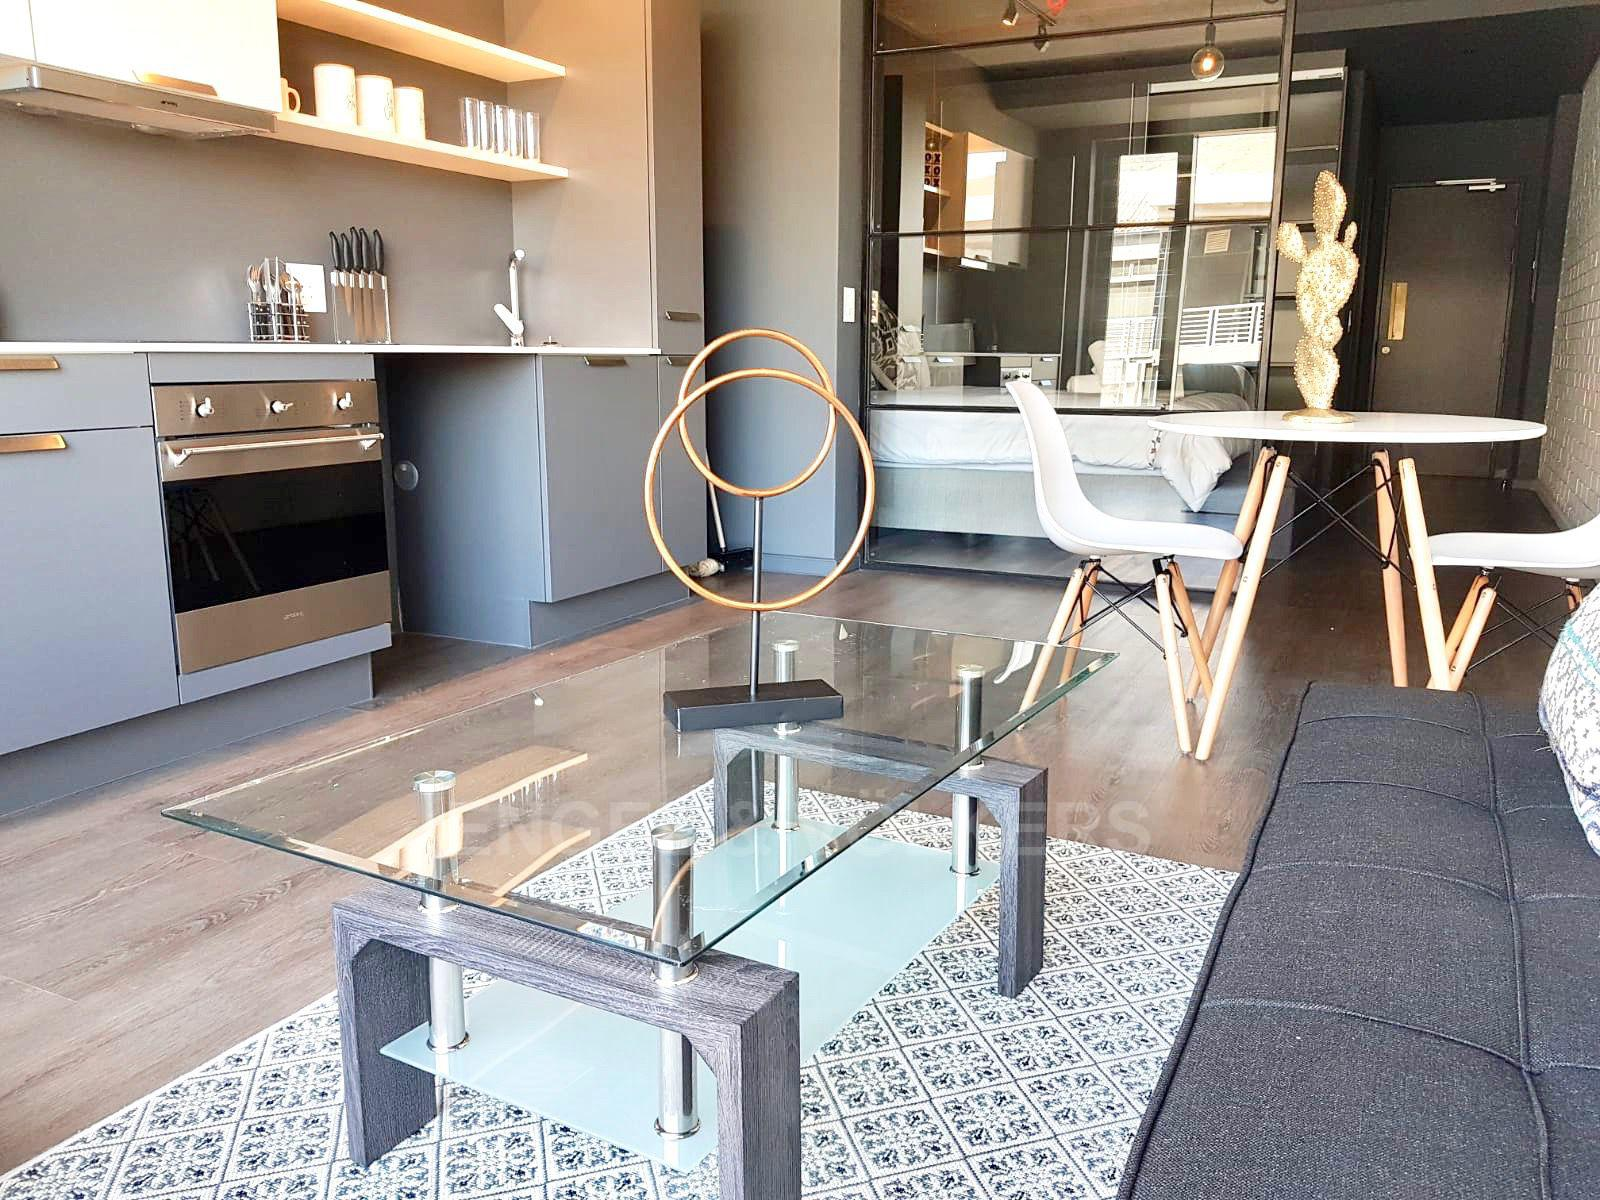 Apartment in Woodstock - Living/kitchen